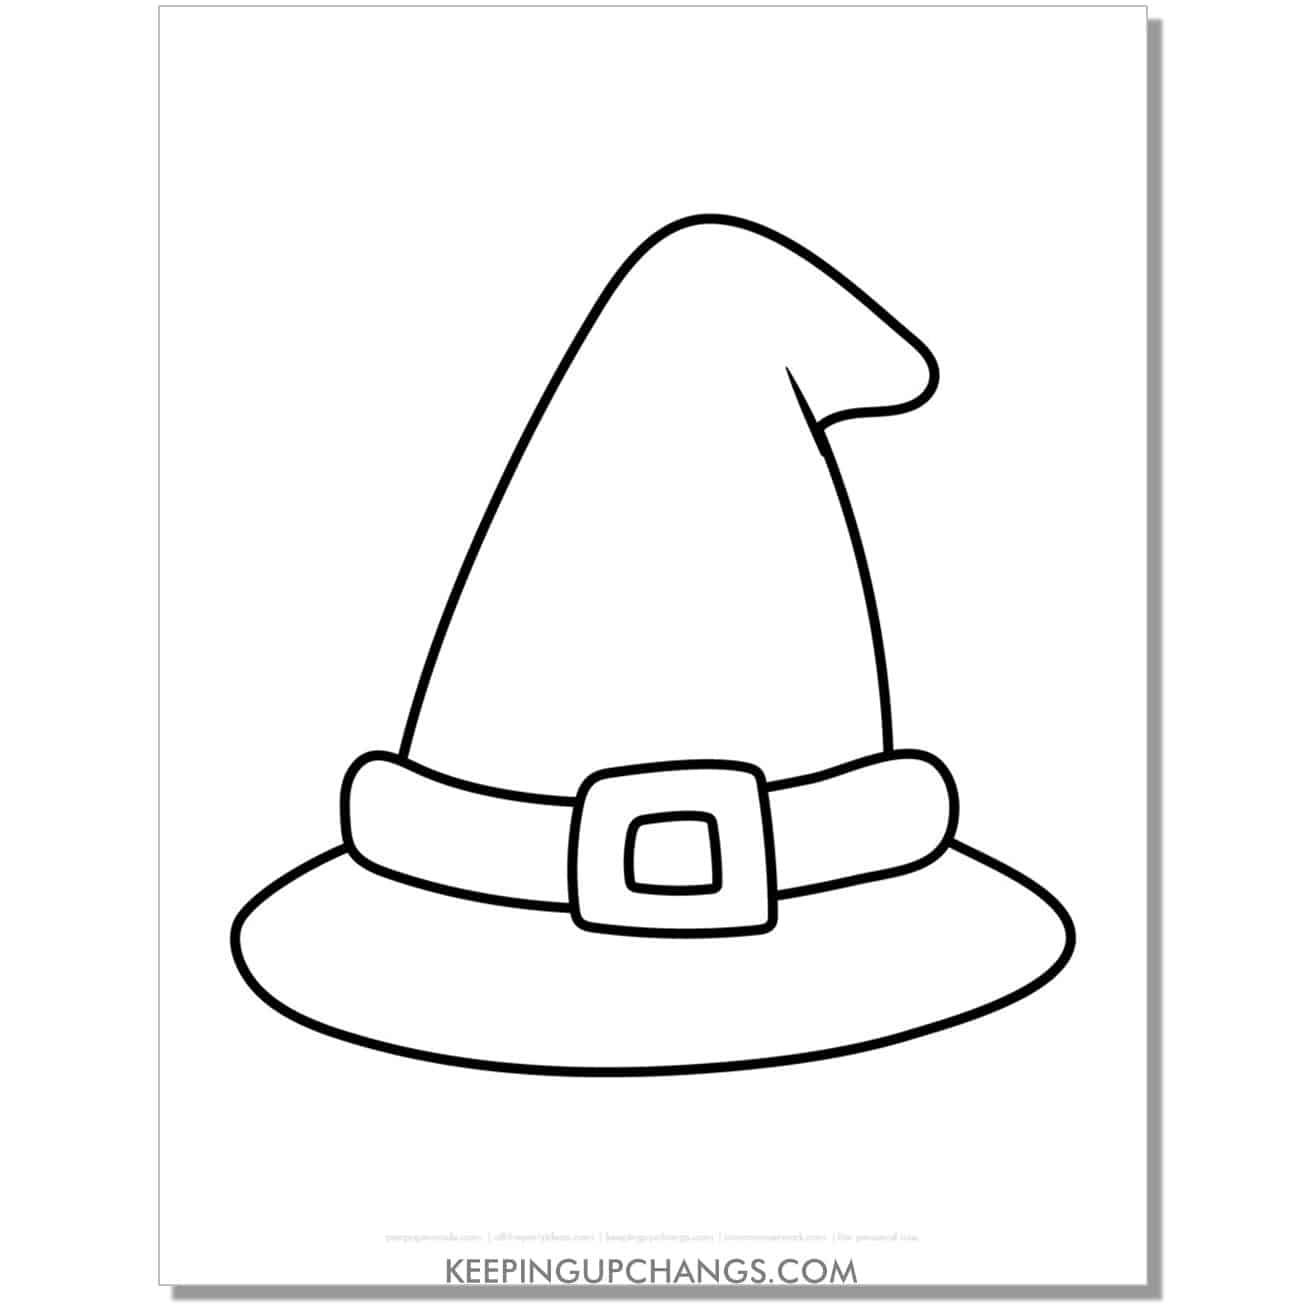 free witch hat halloween coloring page for toddlers.